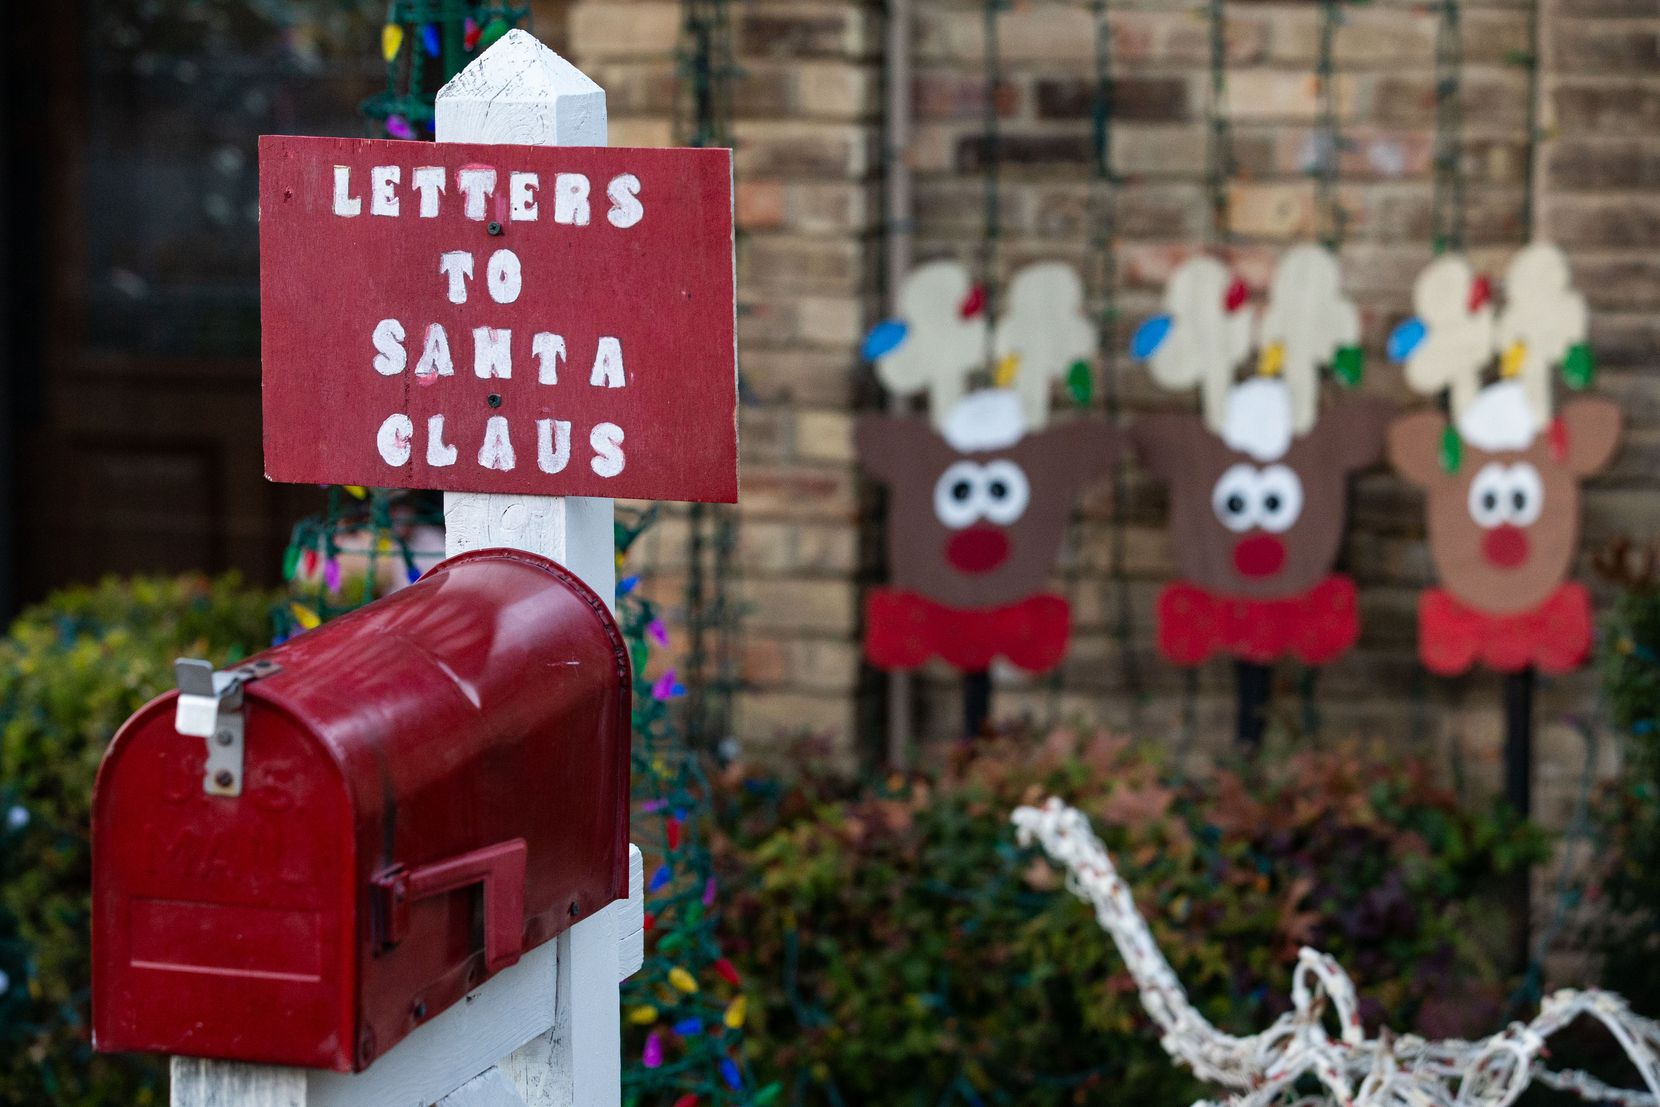 """Linda and Jim Shultz expect more than 100 letters this year in what Linda calls """"our direct pipeline to the North Pole."""" Most come from Lake Highlands children but others are from as far away as Lakewood or west of the North Dallas Tollway."""